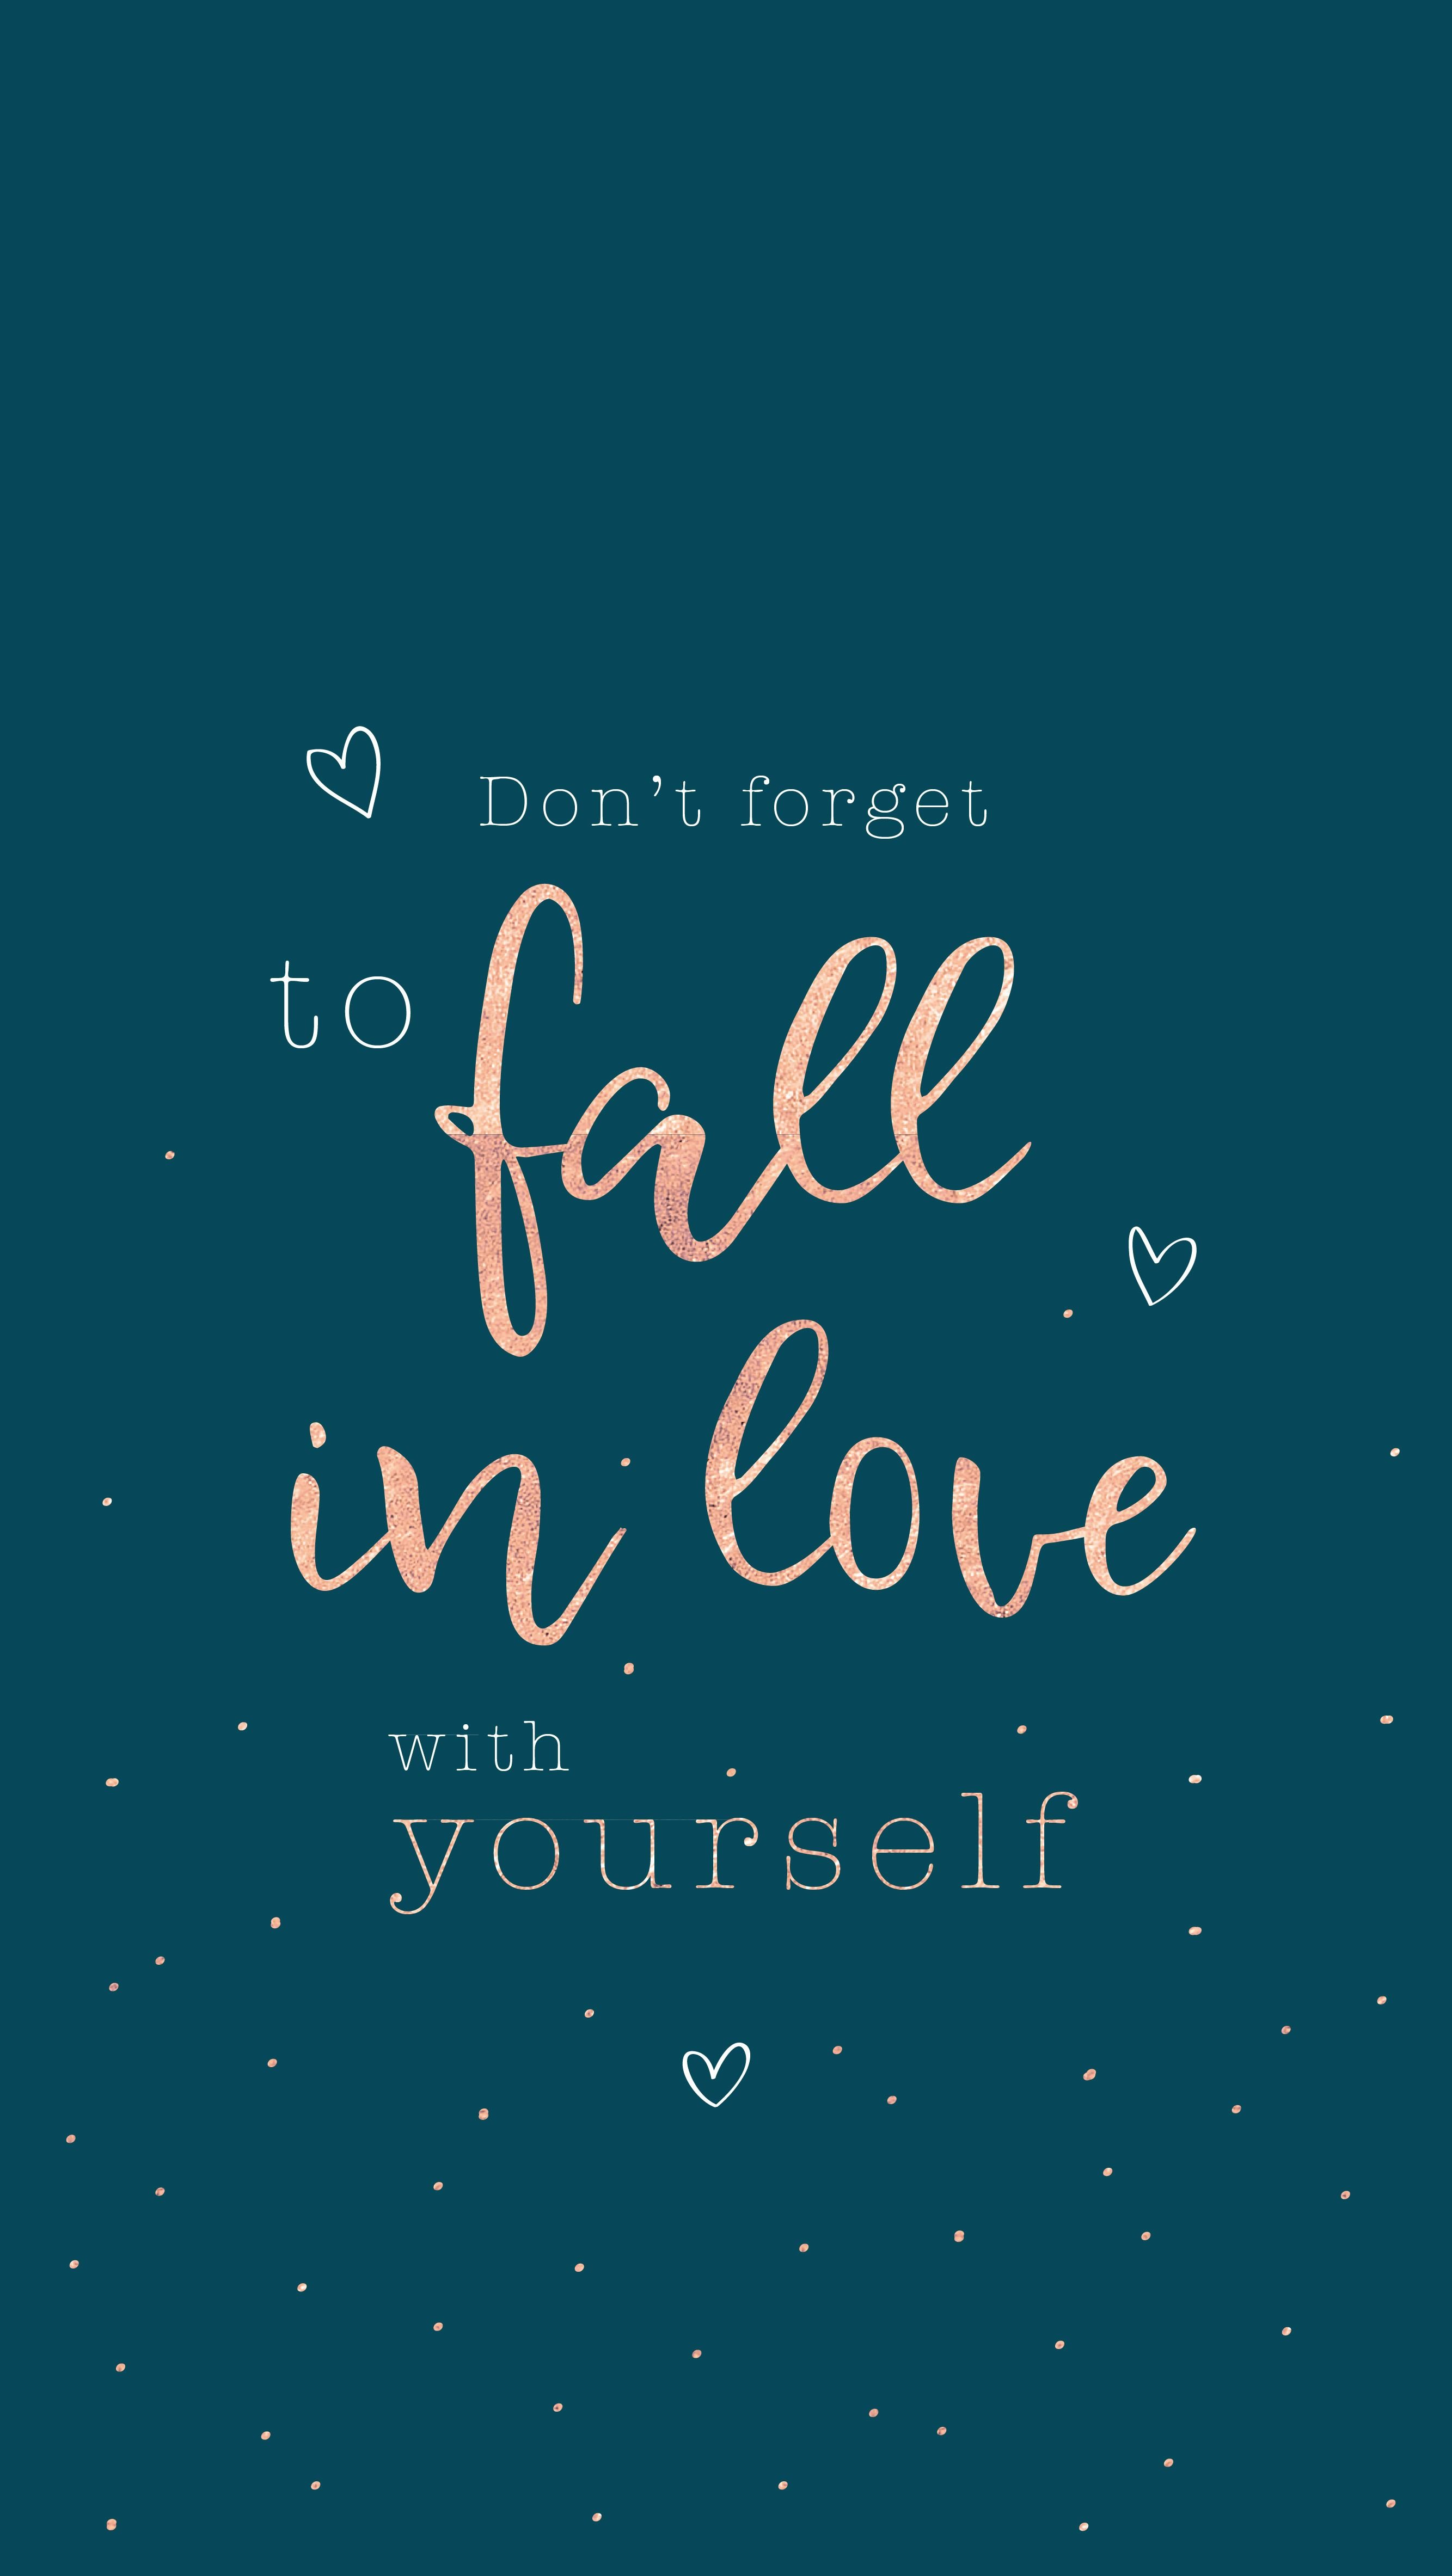 Pin by IM Min on Wallpaper Falling in love quotes Wallpaper 2667x4733